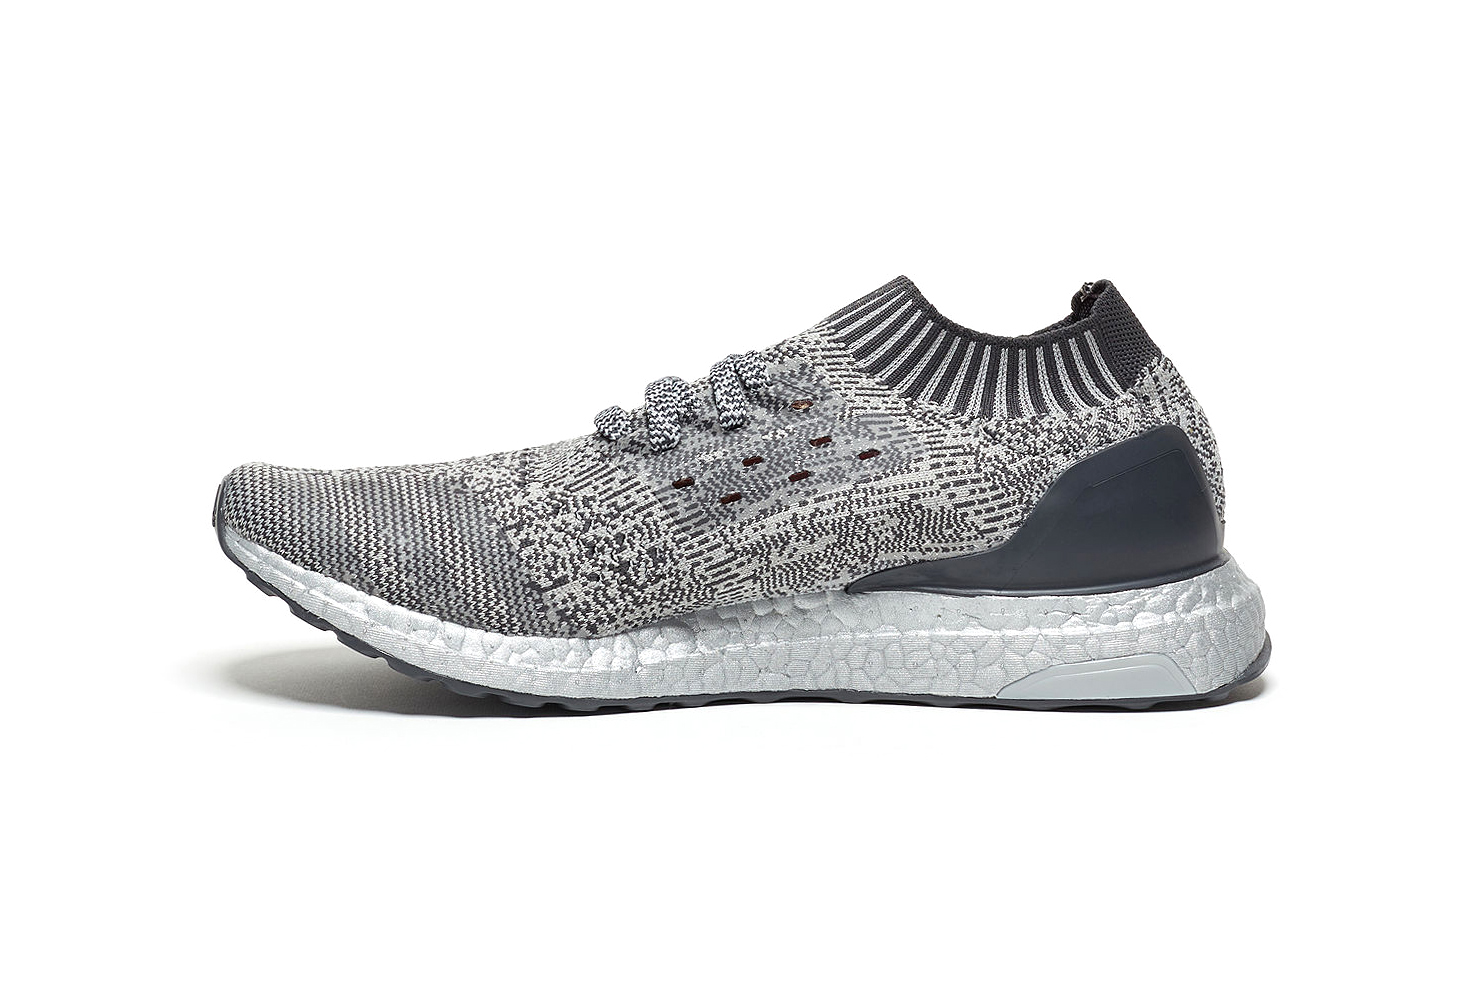 adidas UltraBOOST Uncaged Silver Release Date - 3721442